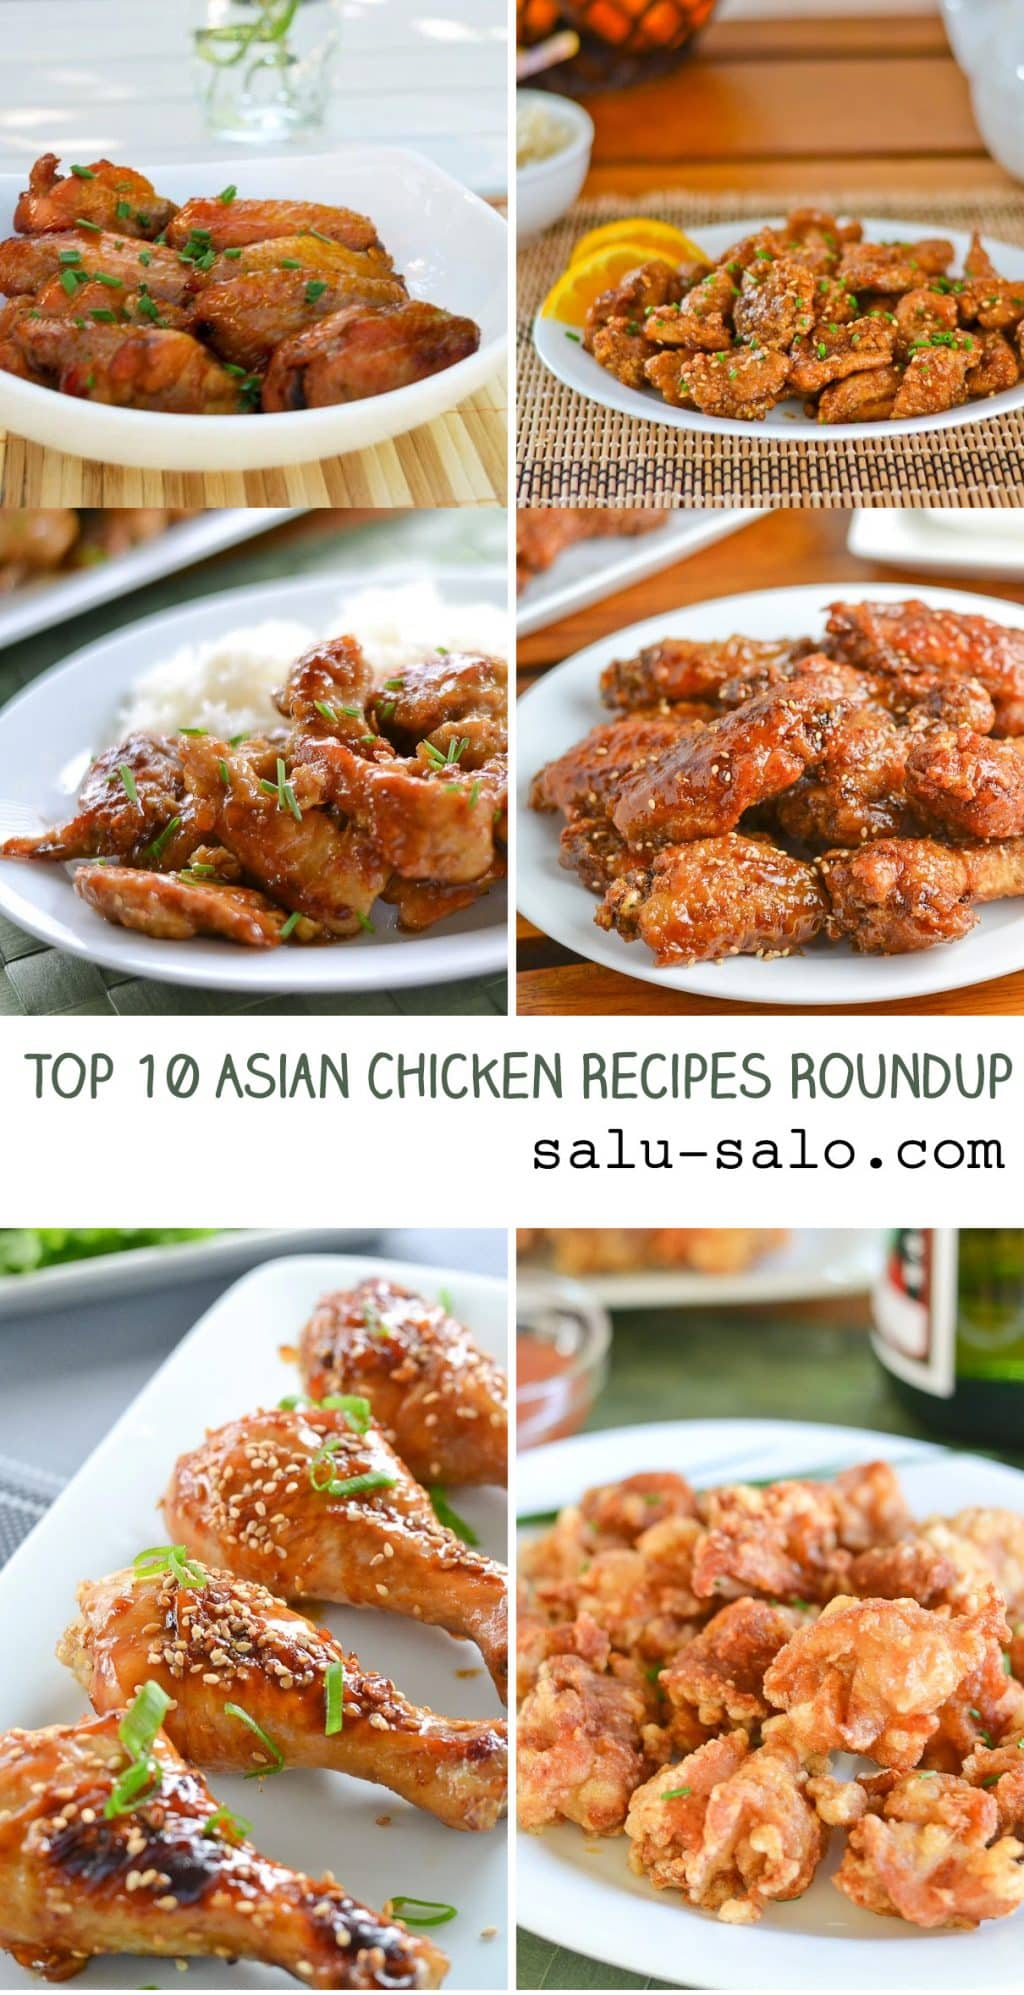 Top 10 Asian Chicken Recipes Roundup